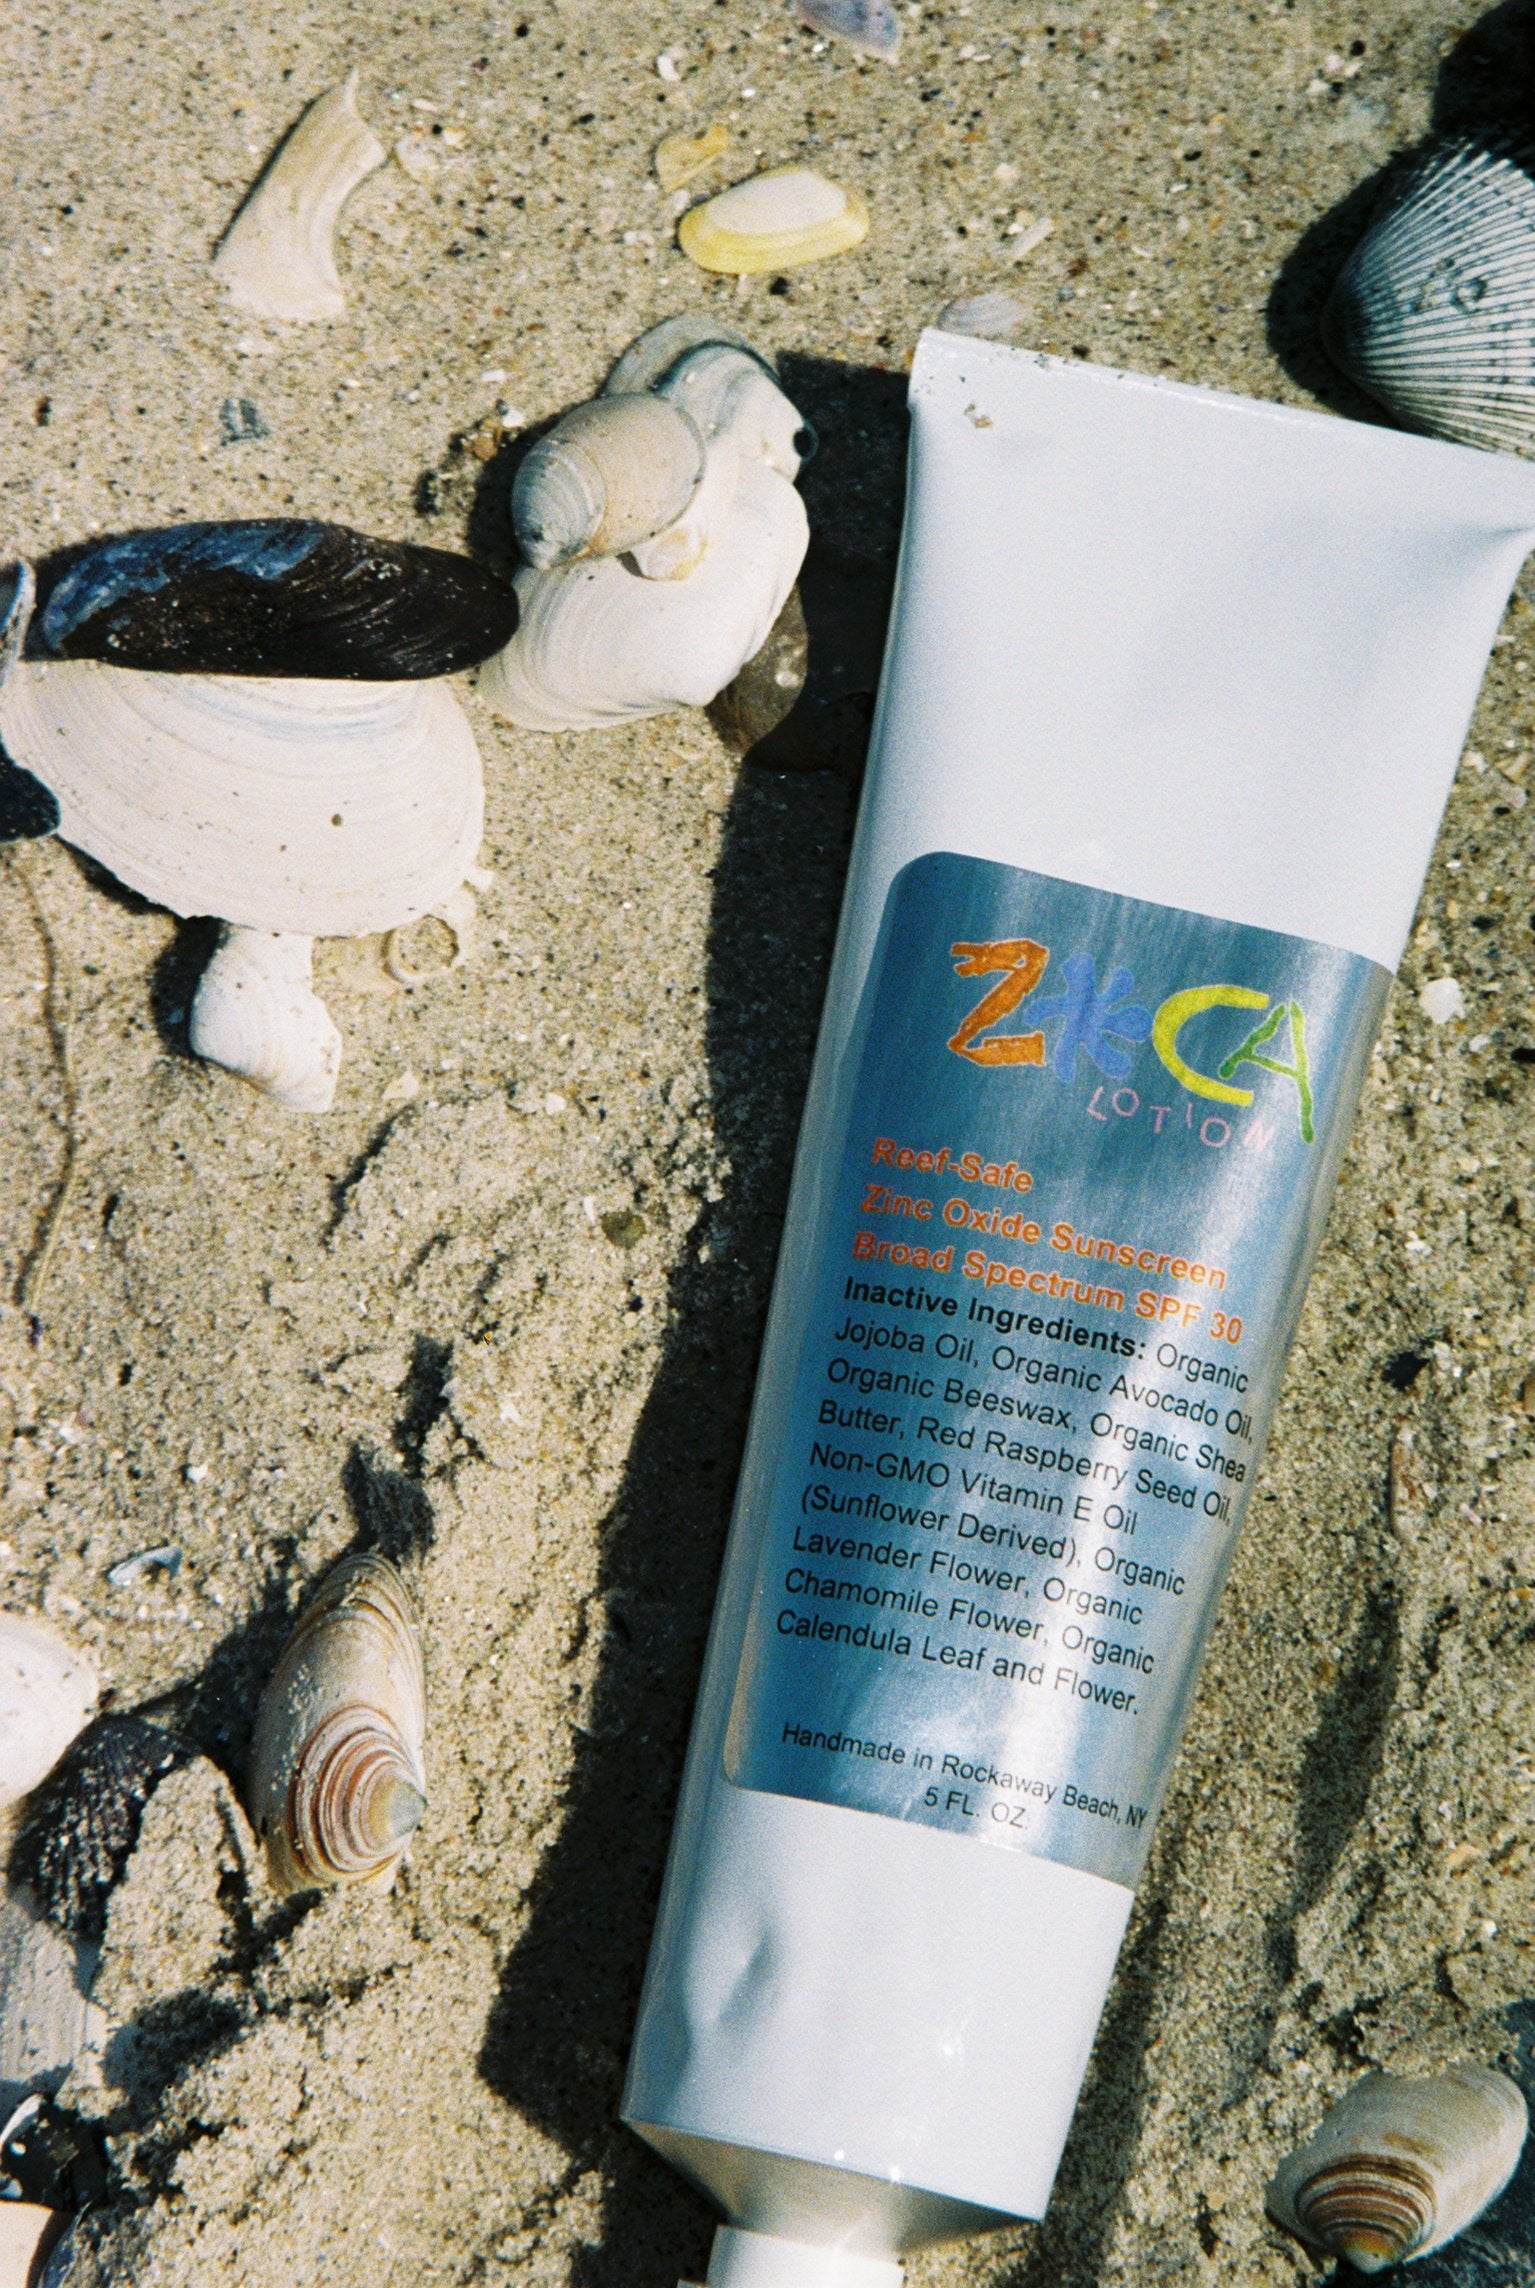 Zoca Lotion Zinc Oxide Sunscreen SPF 30